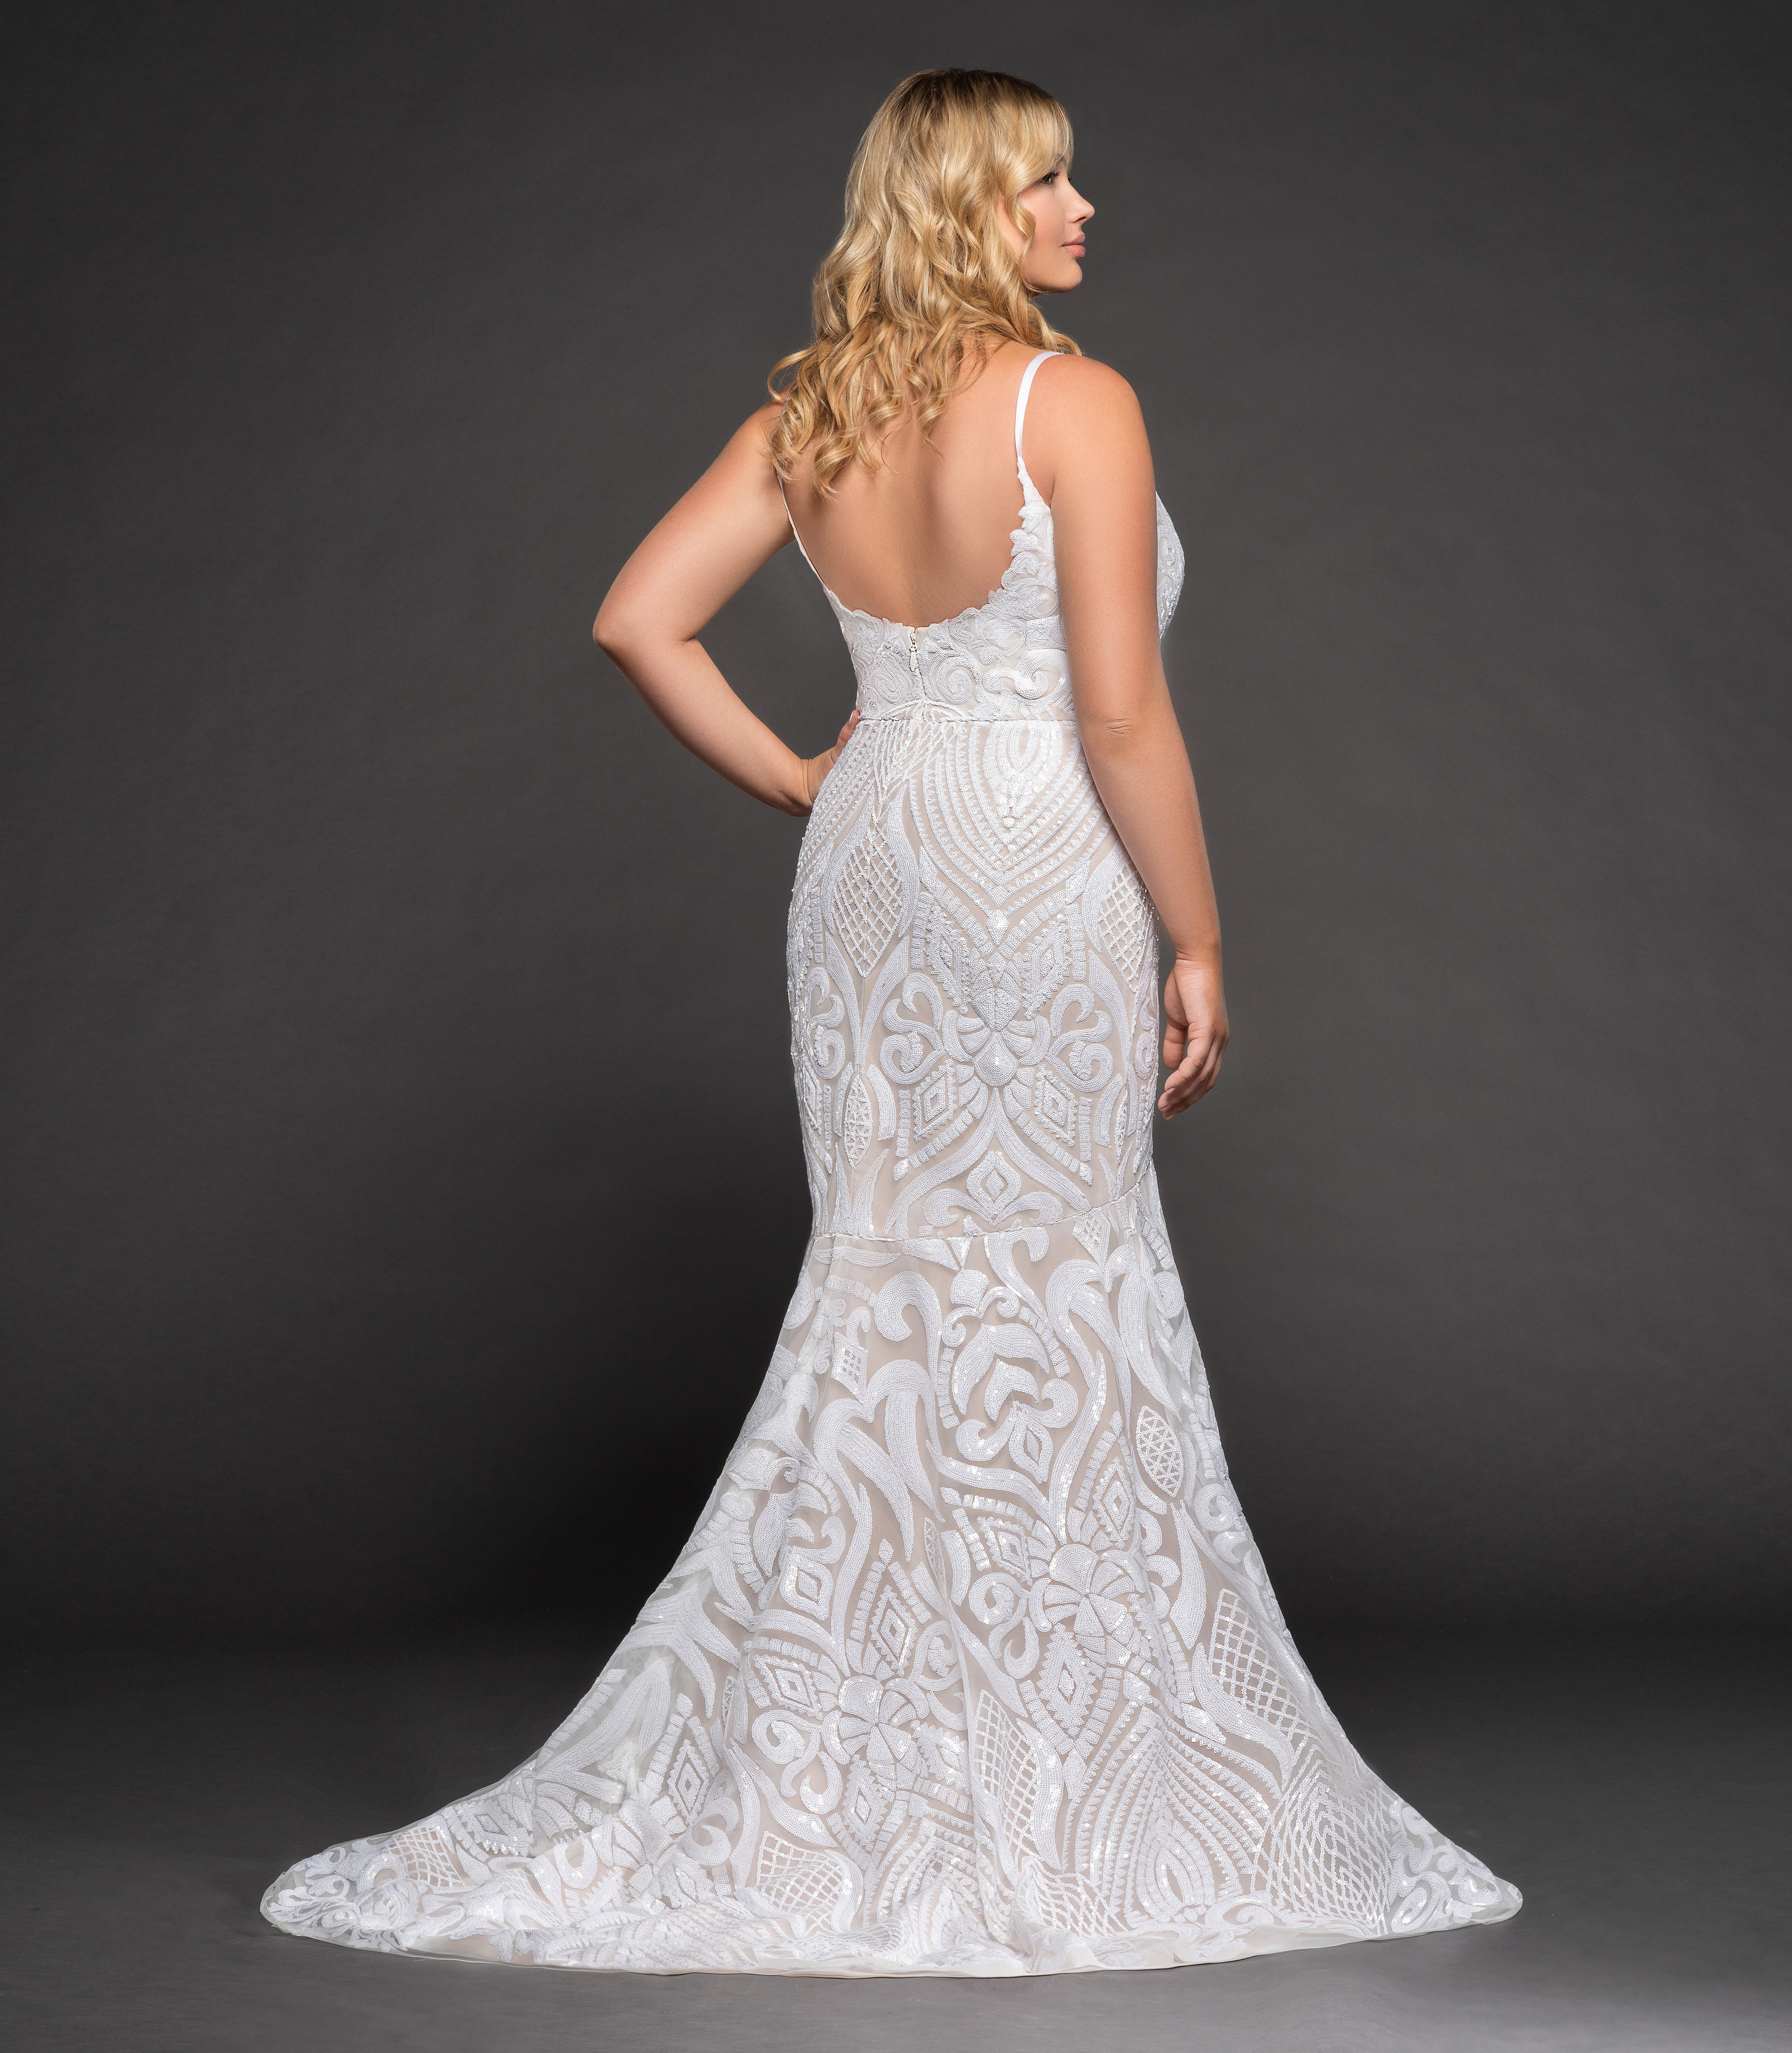 Bridal Gowns And Wedding Dresses By Jlm Couture Style 1710 West